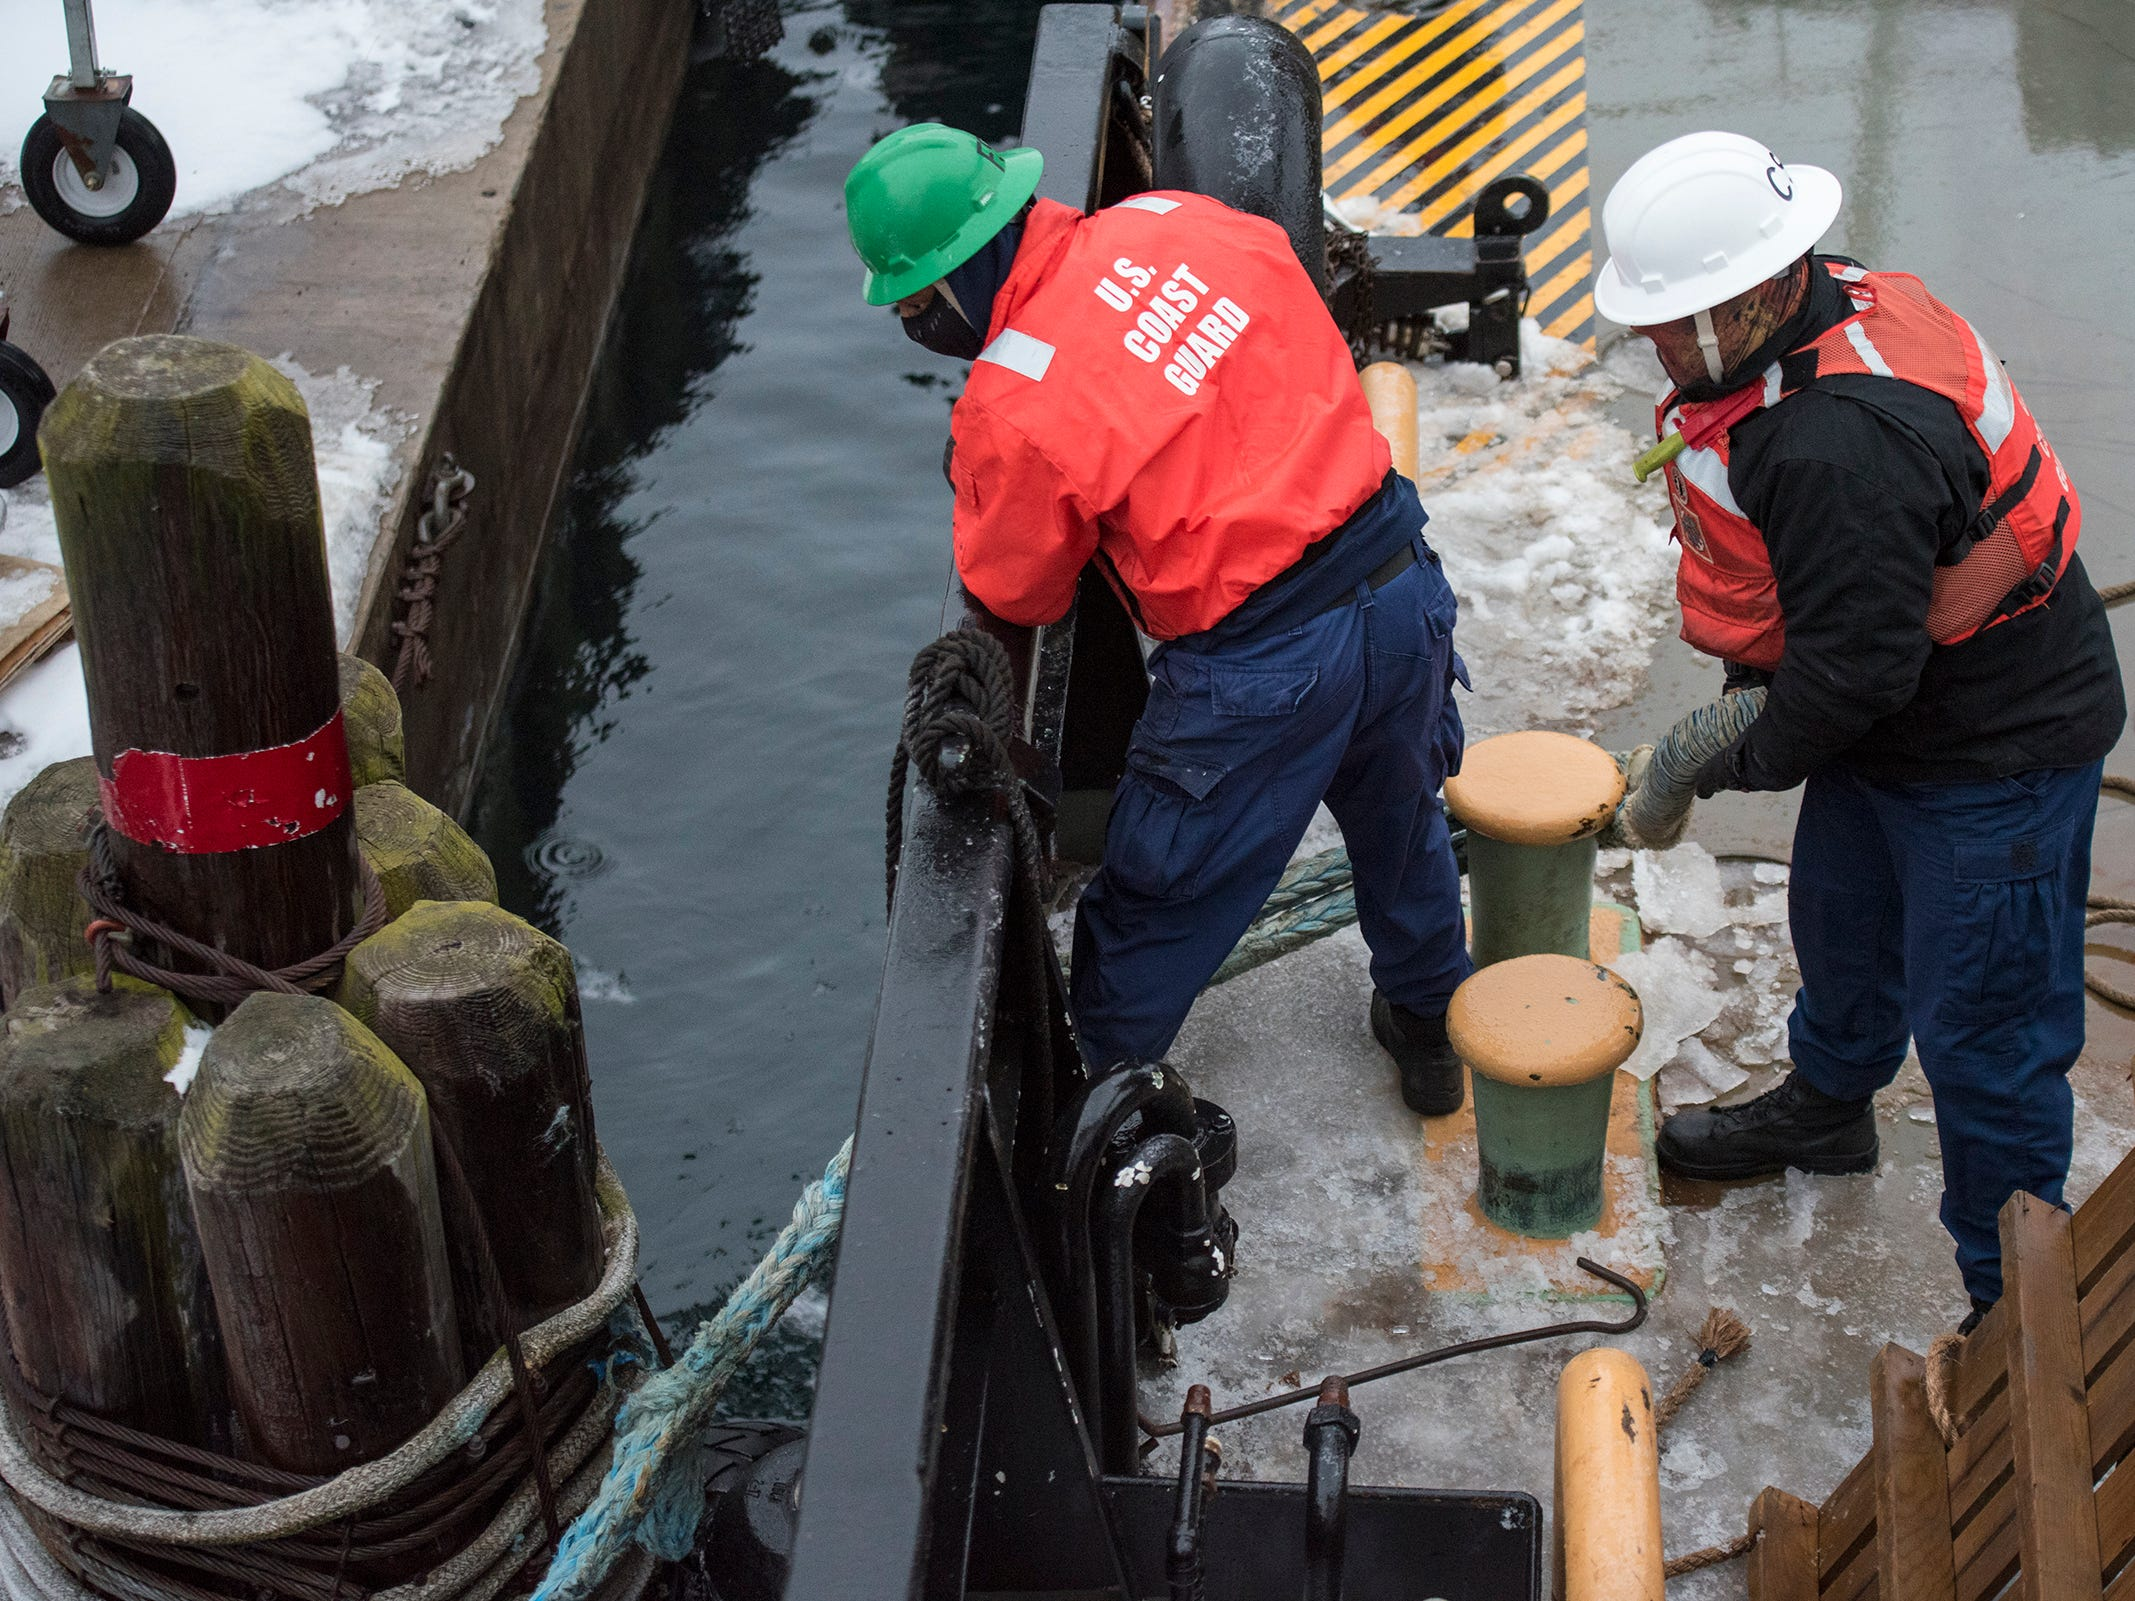 """U.S. Coast Guard CS2 Lee Johnson, left, and CS1 Chip Dollahon pull lines onto the deck of the USCGC Hollyhock as the crew works to dock it Wednesday, Feb. 20, 2019 in Port Huron. Johnson and Dollahon use the lines to pull the ship into position and secure it to the dock before pulling the bridge to the ship. """"Basically without us, nobody gets off the ship,"""" Lee said."""